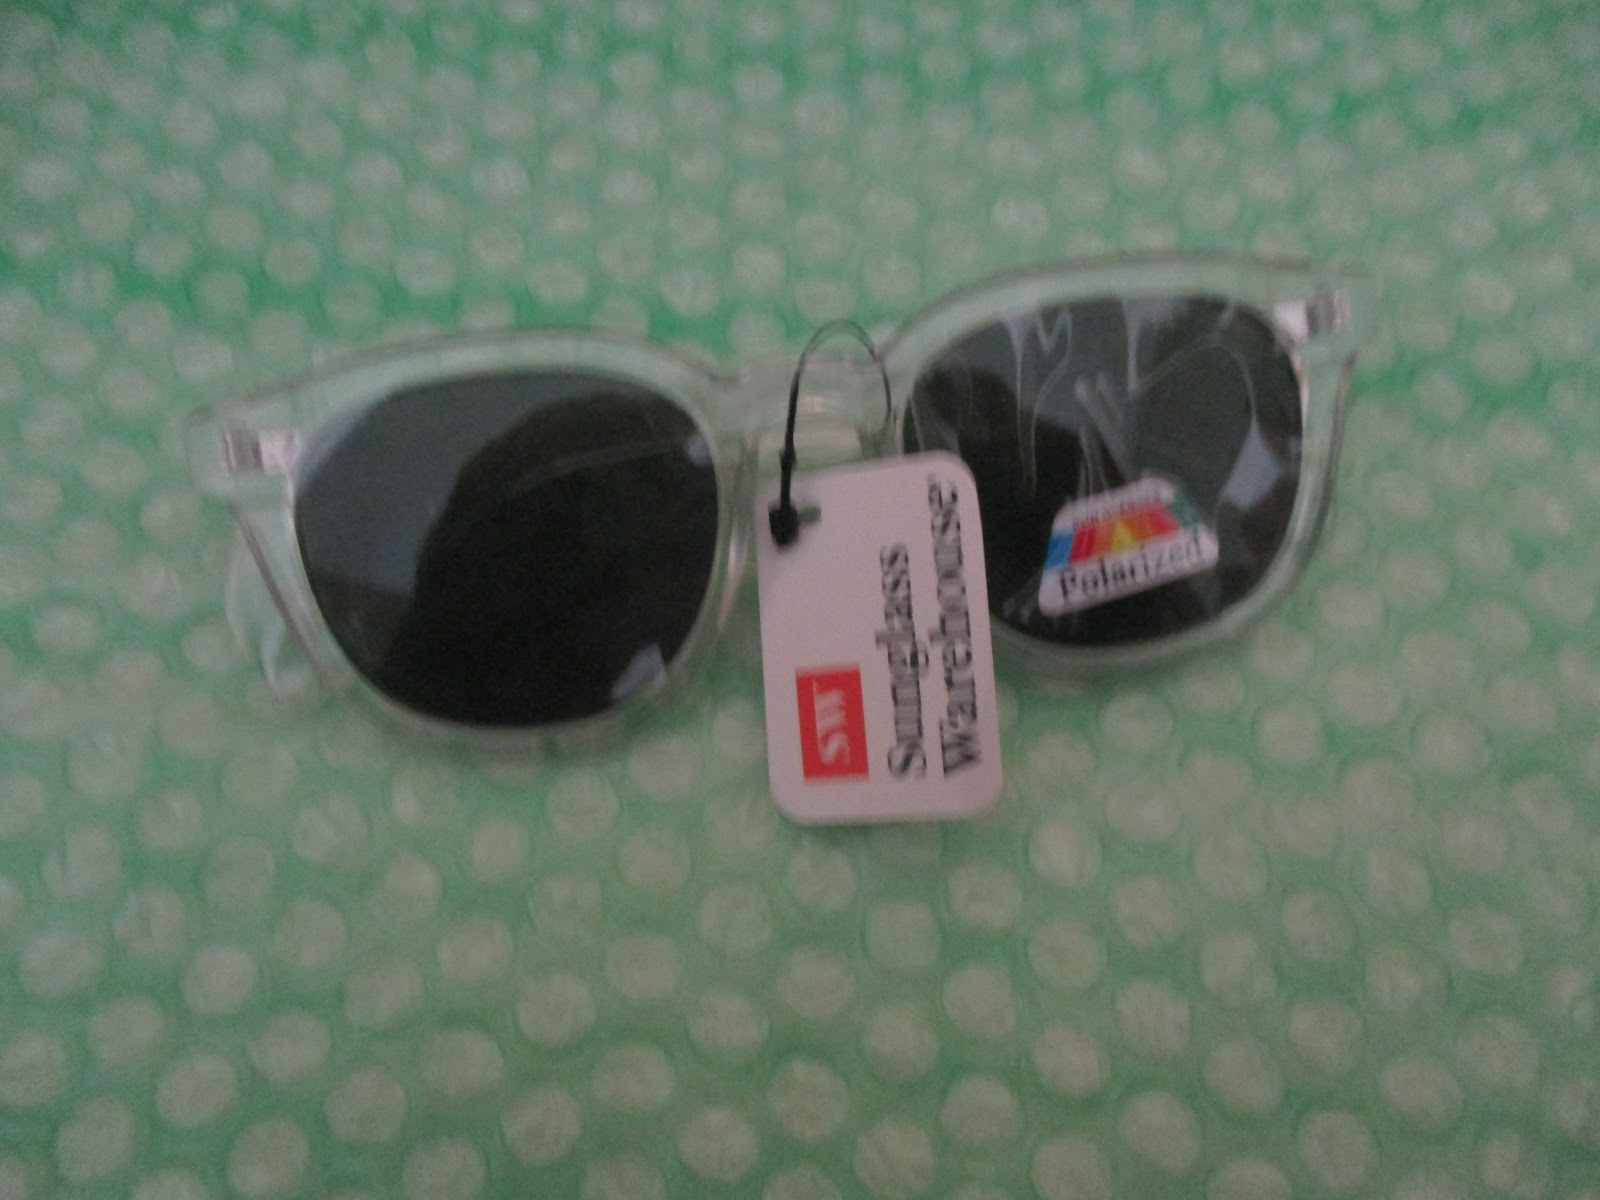 c7be8eeaea To see more visit https   www.sunglasswarehouse.com